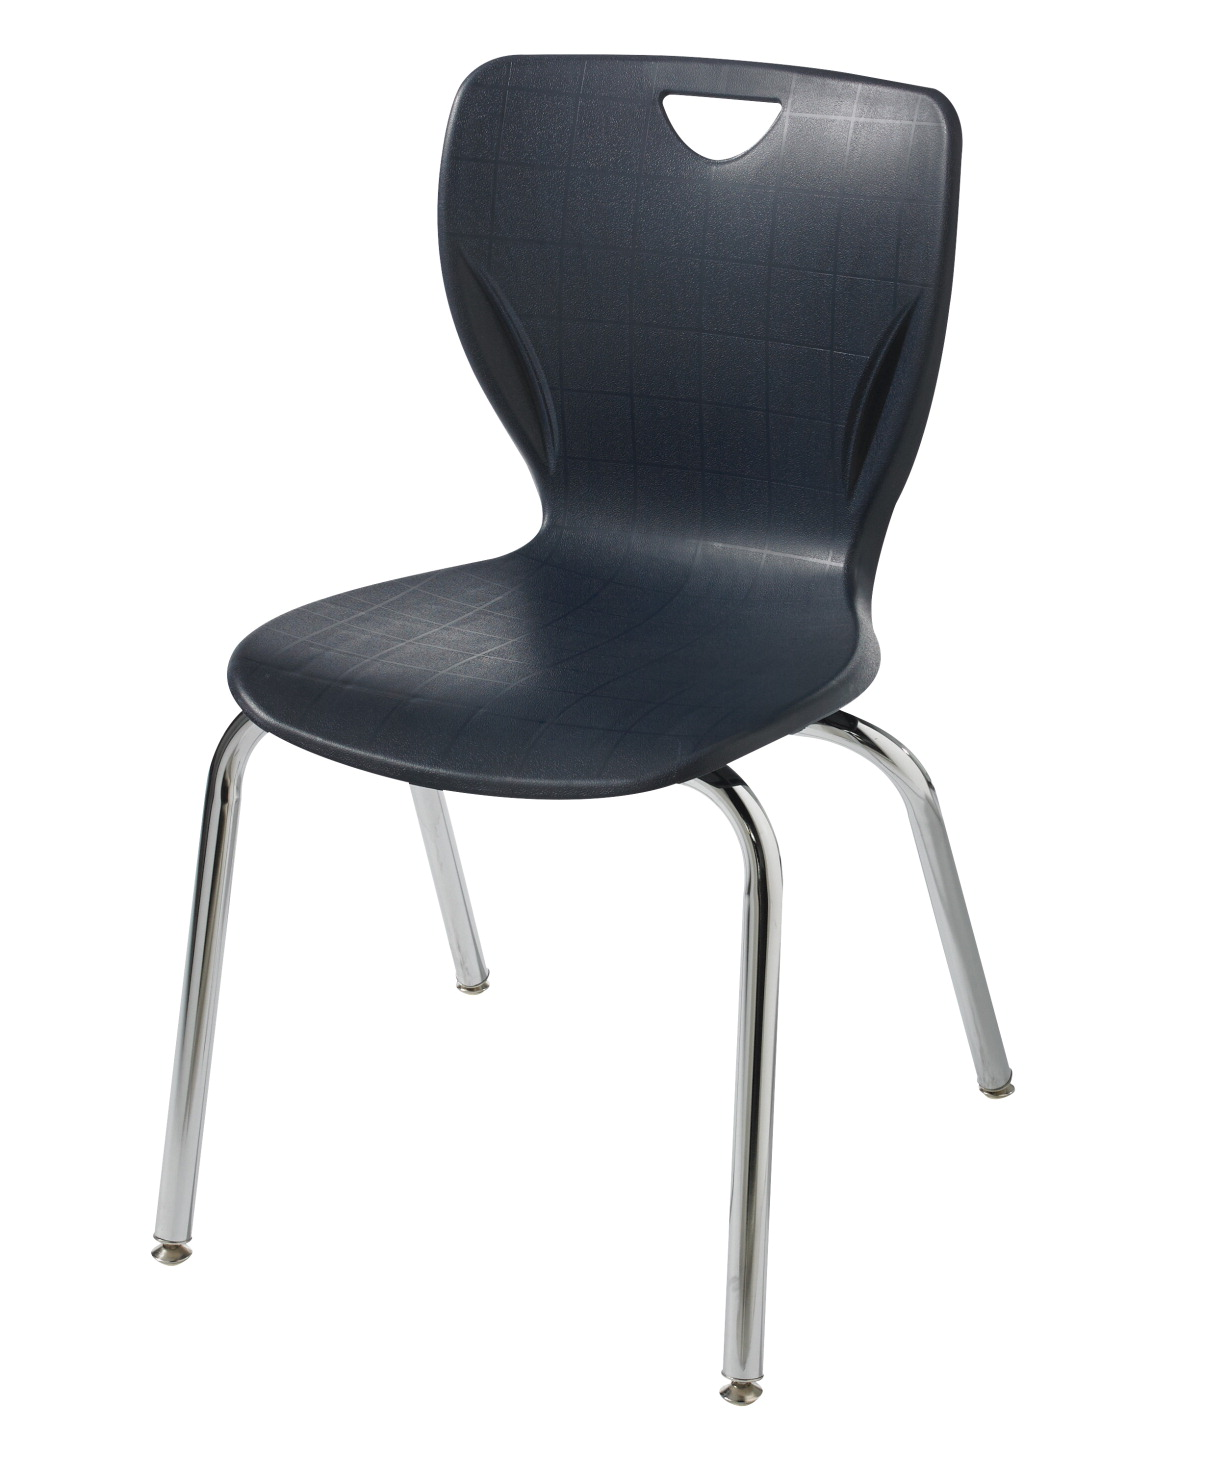 Modern Classroom Chairs : Classroom select contemporary chair direct